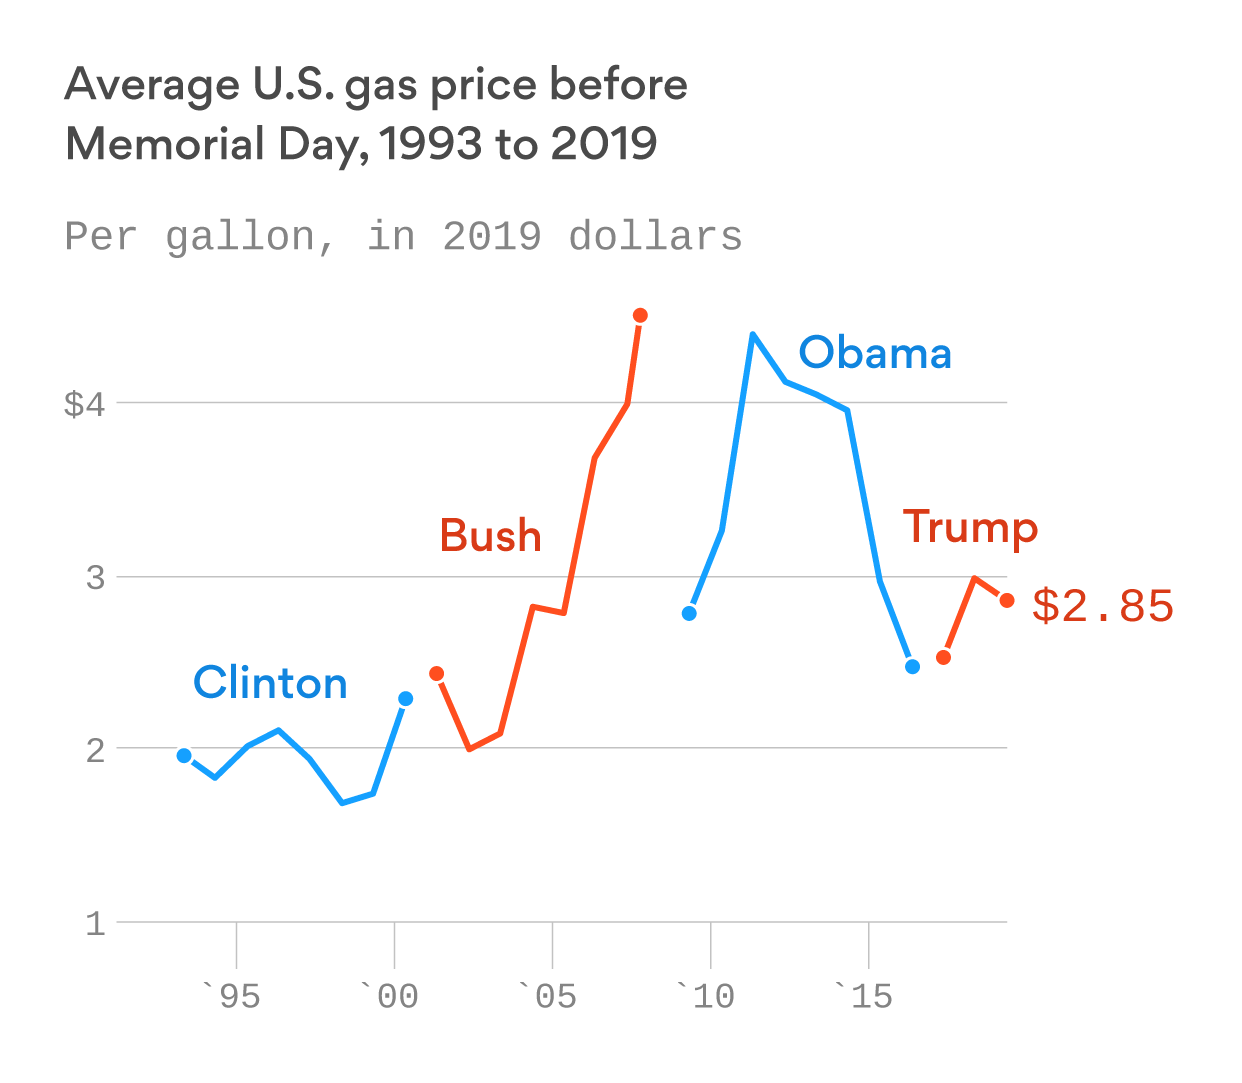 Ahead of Memorial Day weekend, low gas prices bring home a cheap win for Trump